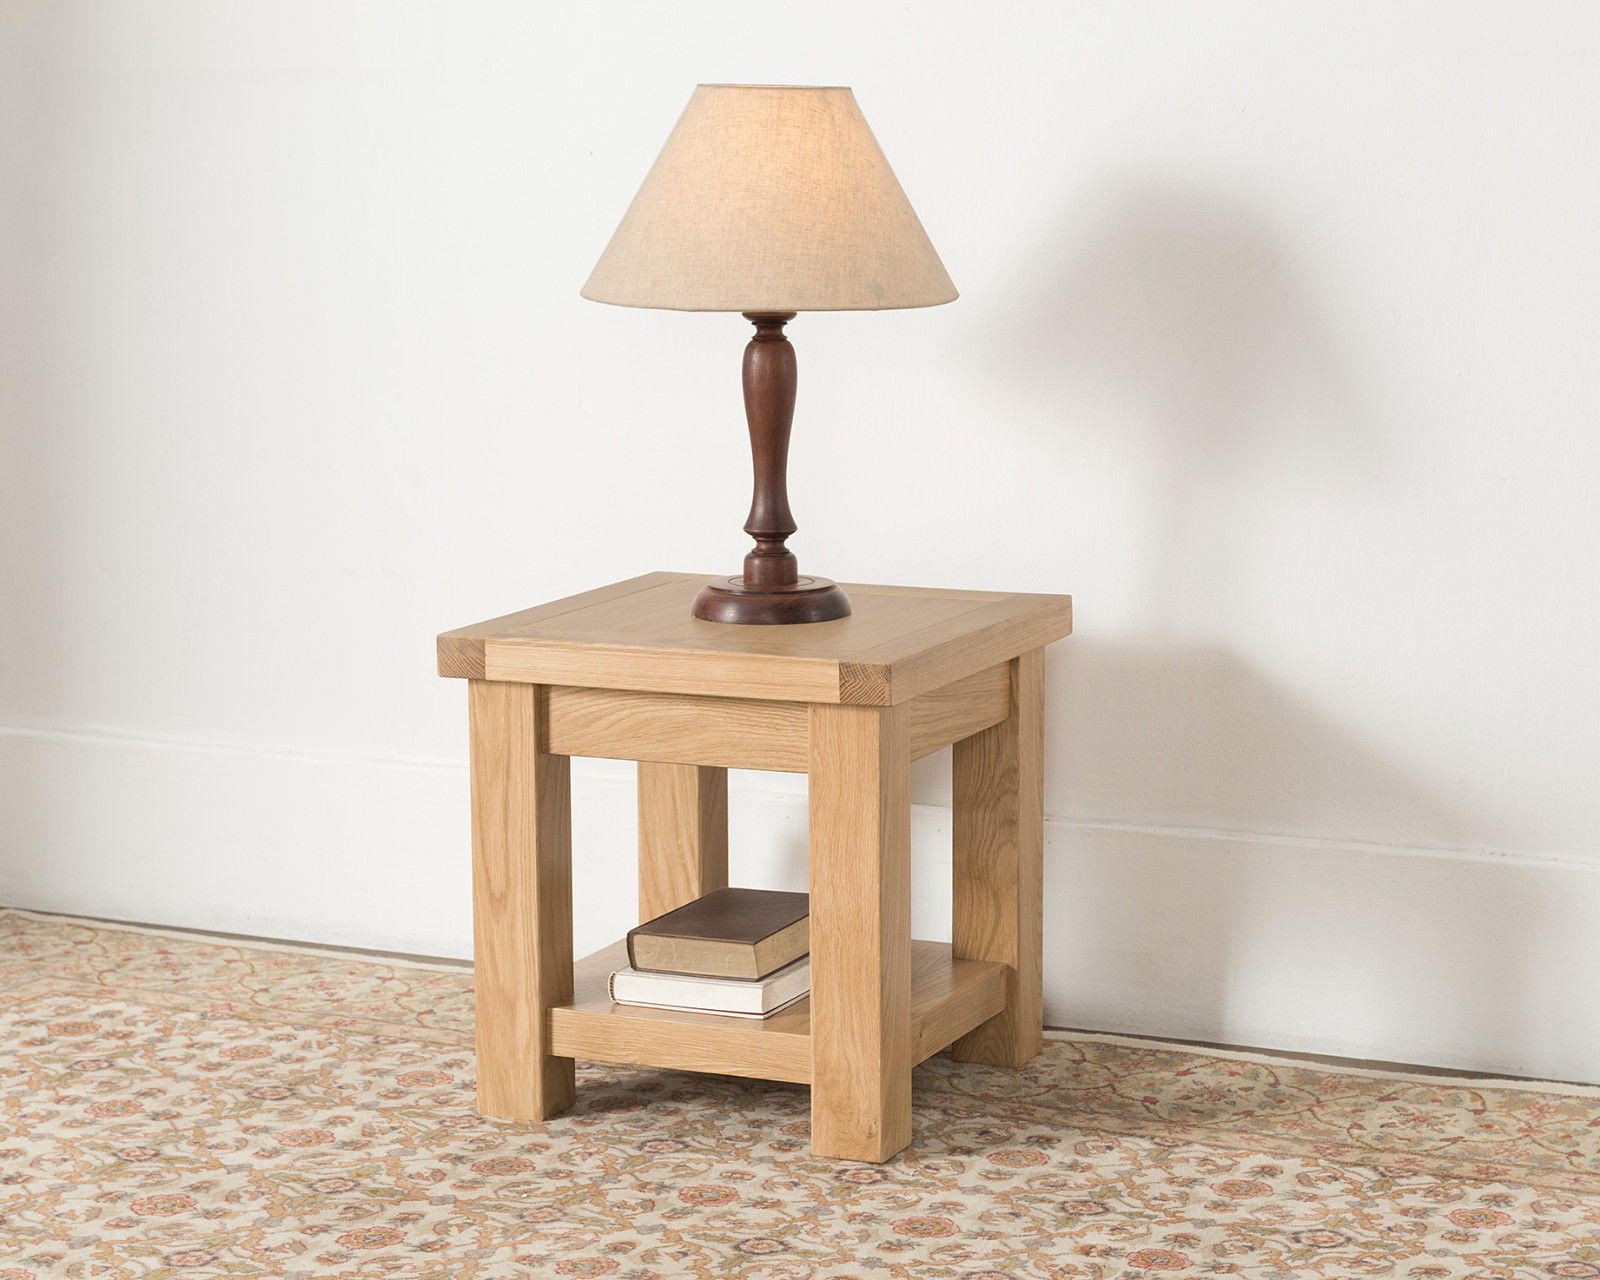 dining room portable wheels and rent computer kitchen toddlers side set storage for lamp living cros garden tables accent end chairs bedside round argos table oak console folding